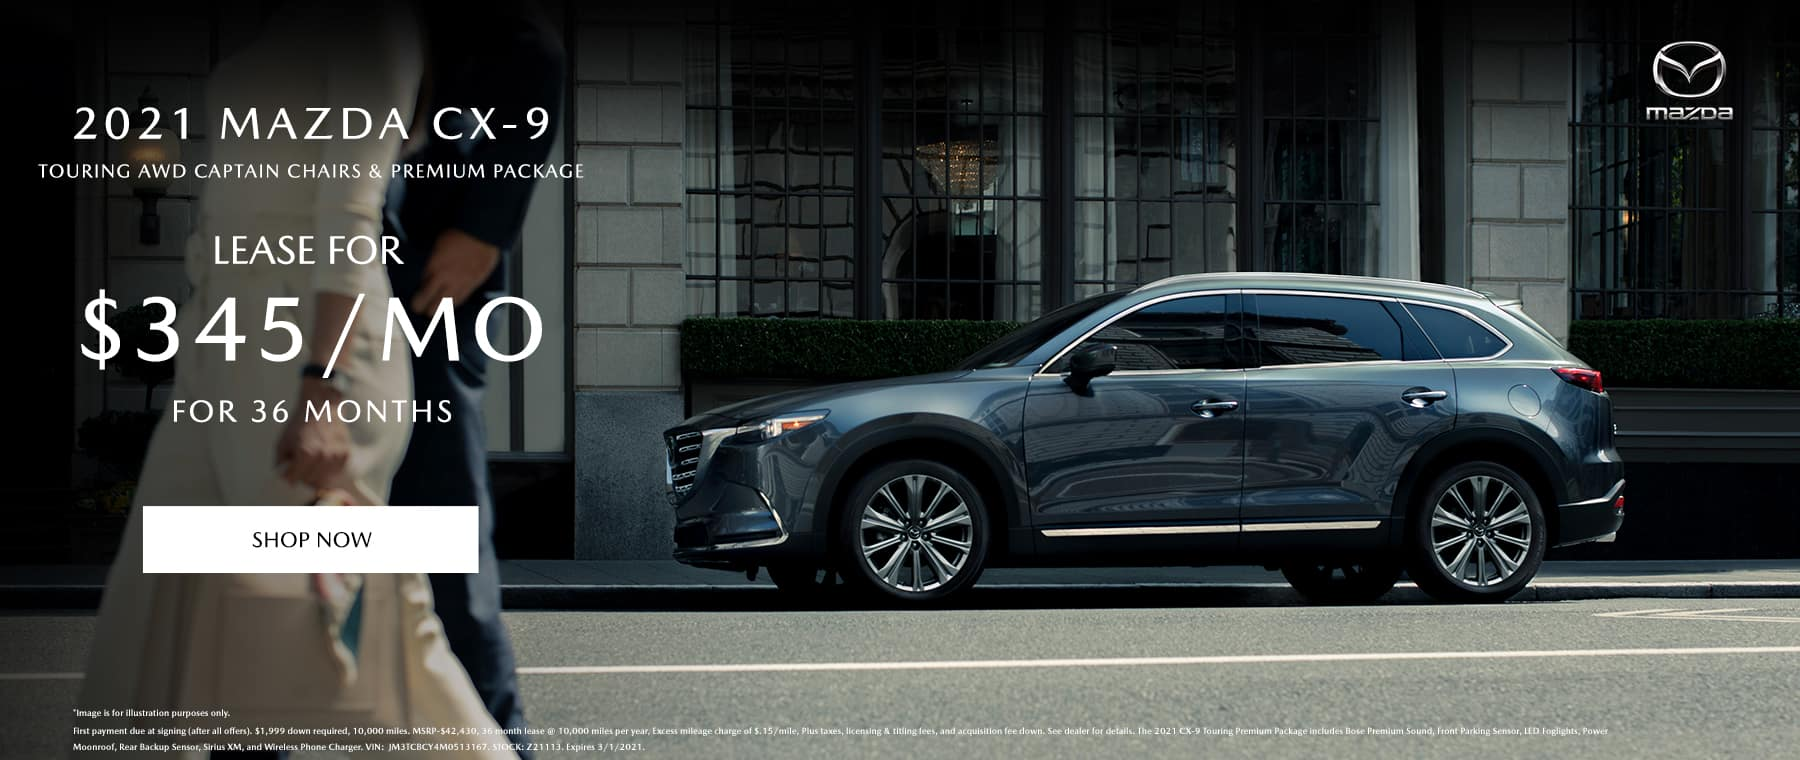 2021 Mazda CX-9 Touring AWD w/ Captain Chairs & Premium Package $345/Month for 36 Months